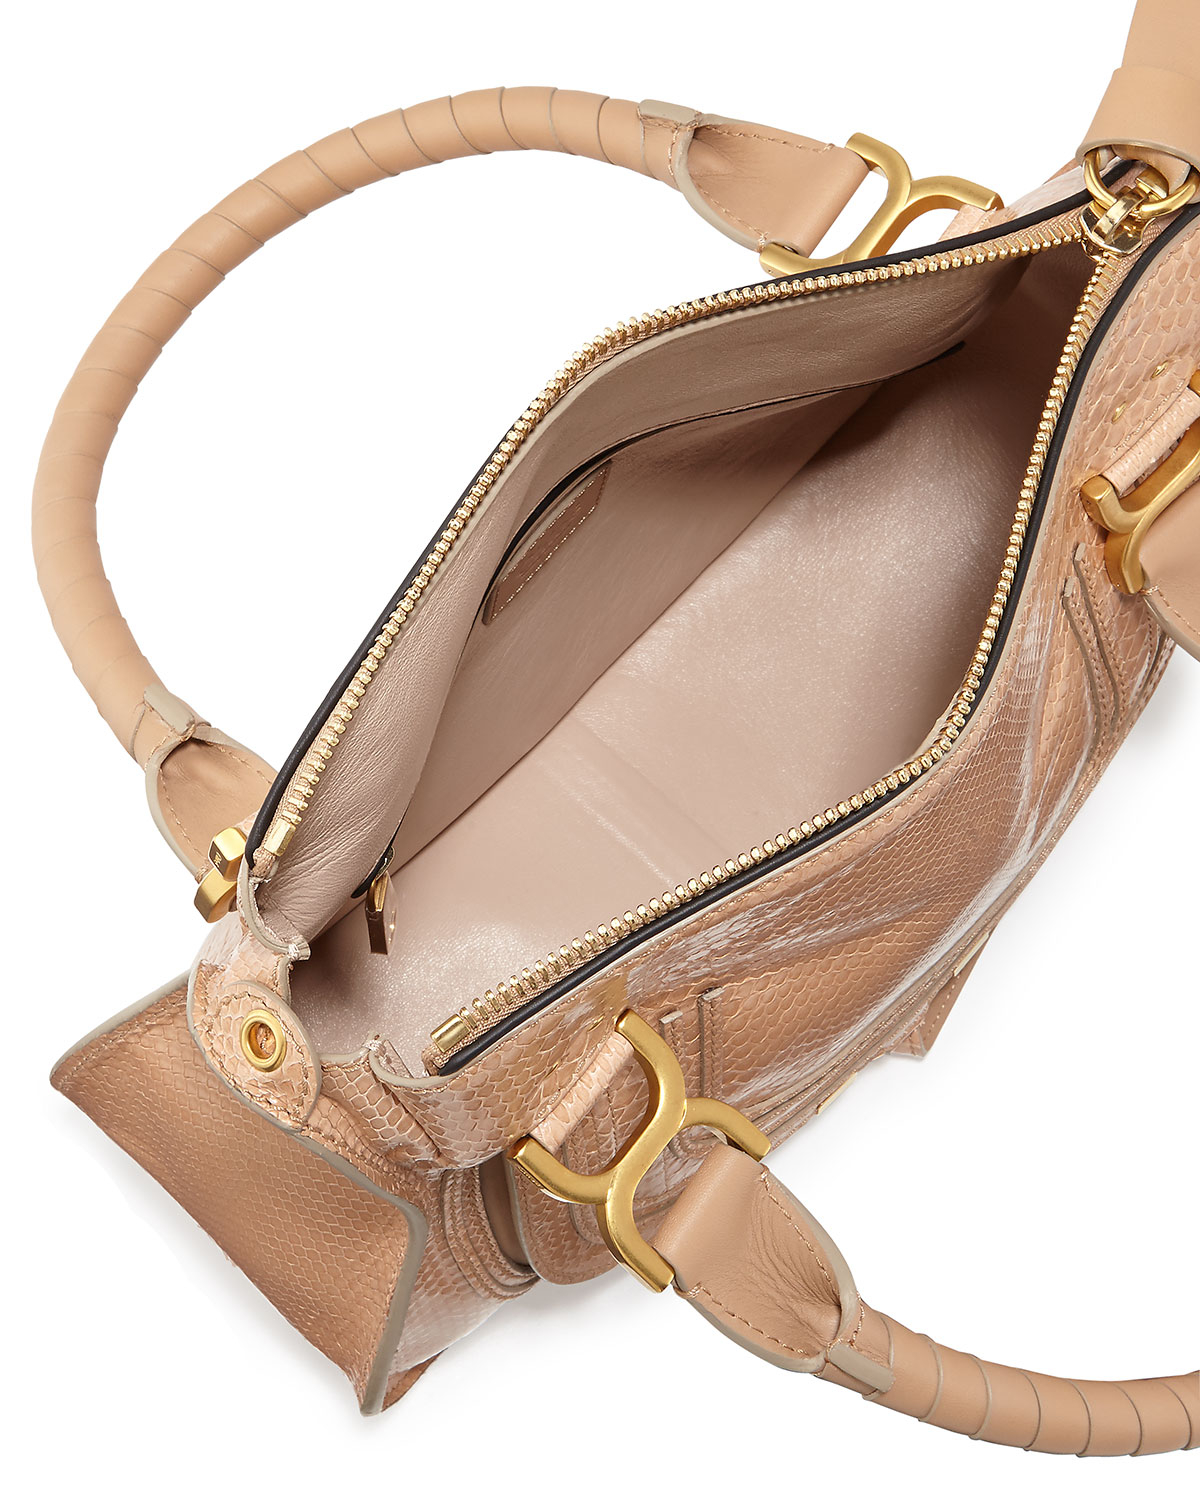 Chlo¨¦ Marcie Python Shoulder Bag in Beige (SAND) | Lyst